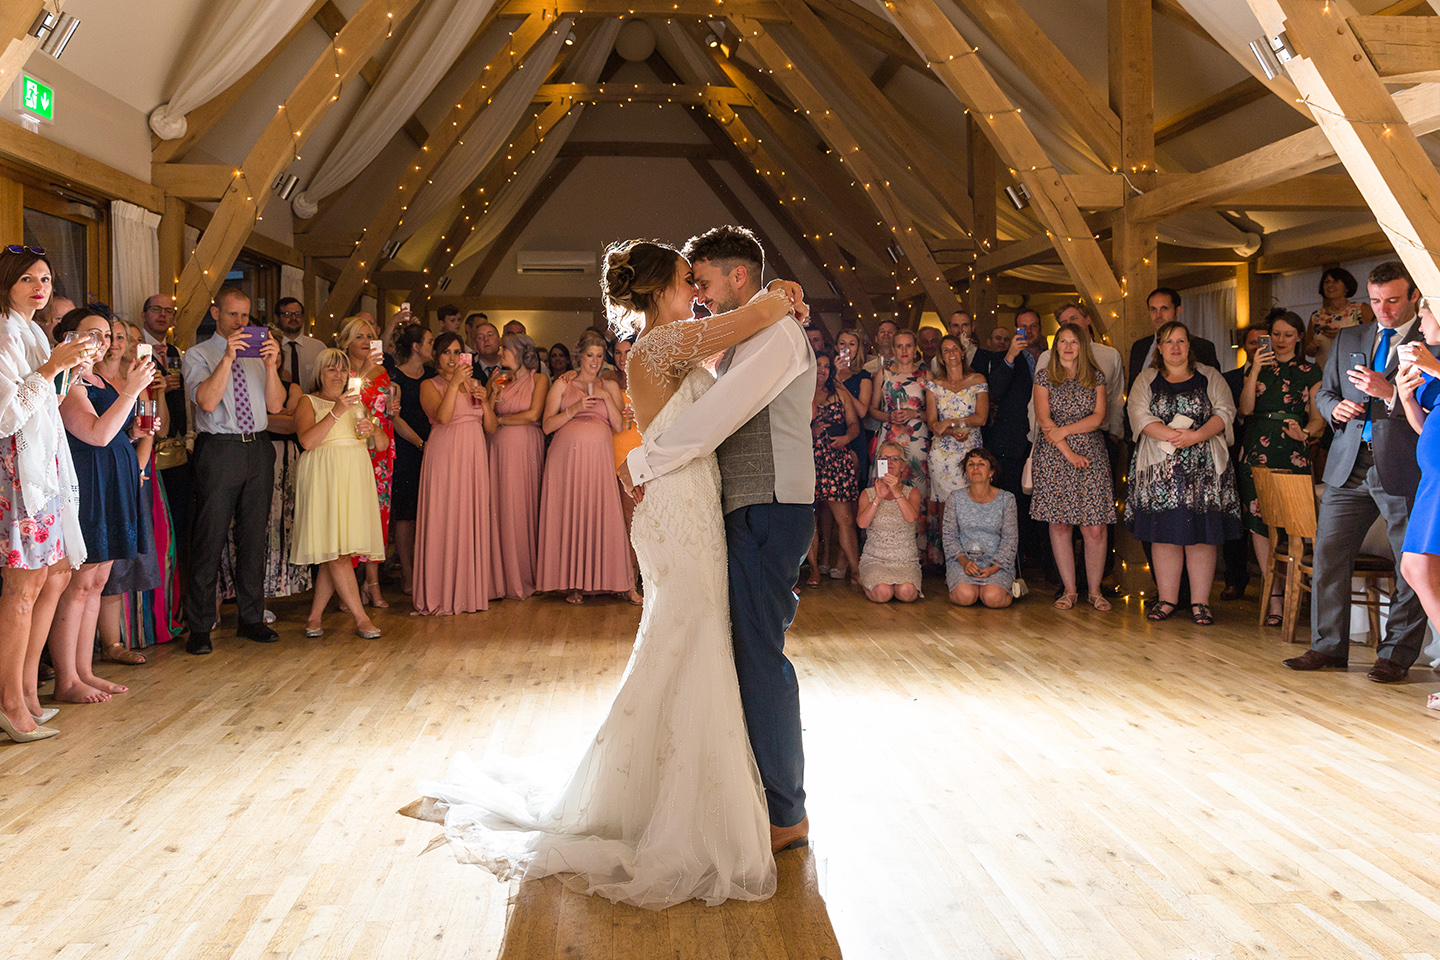 Newlyweds perform their first dance in the Bridge Barn at Bassmead Manor Barns